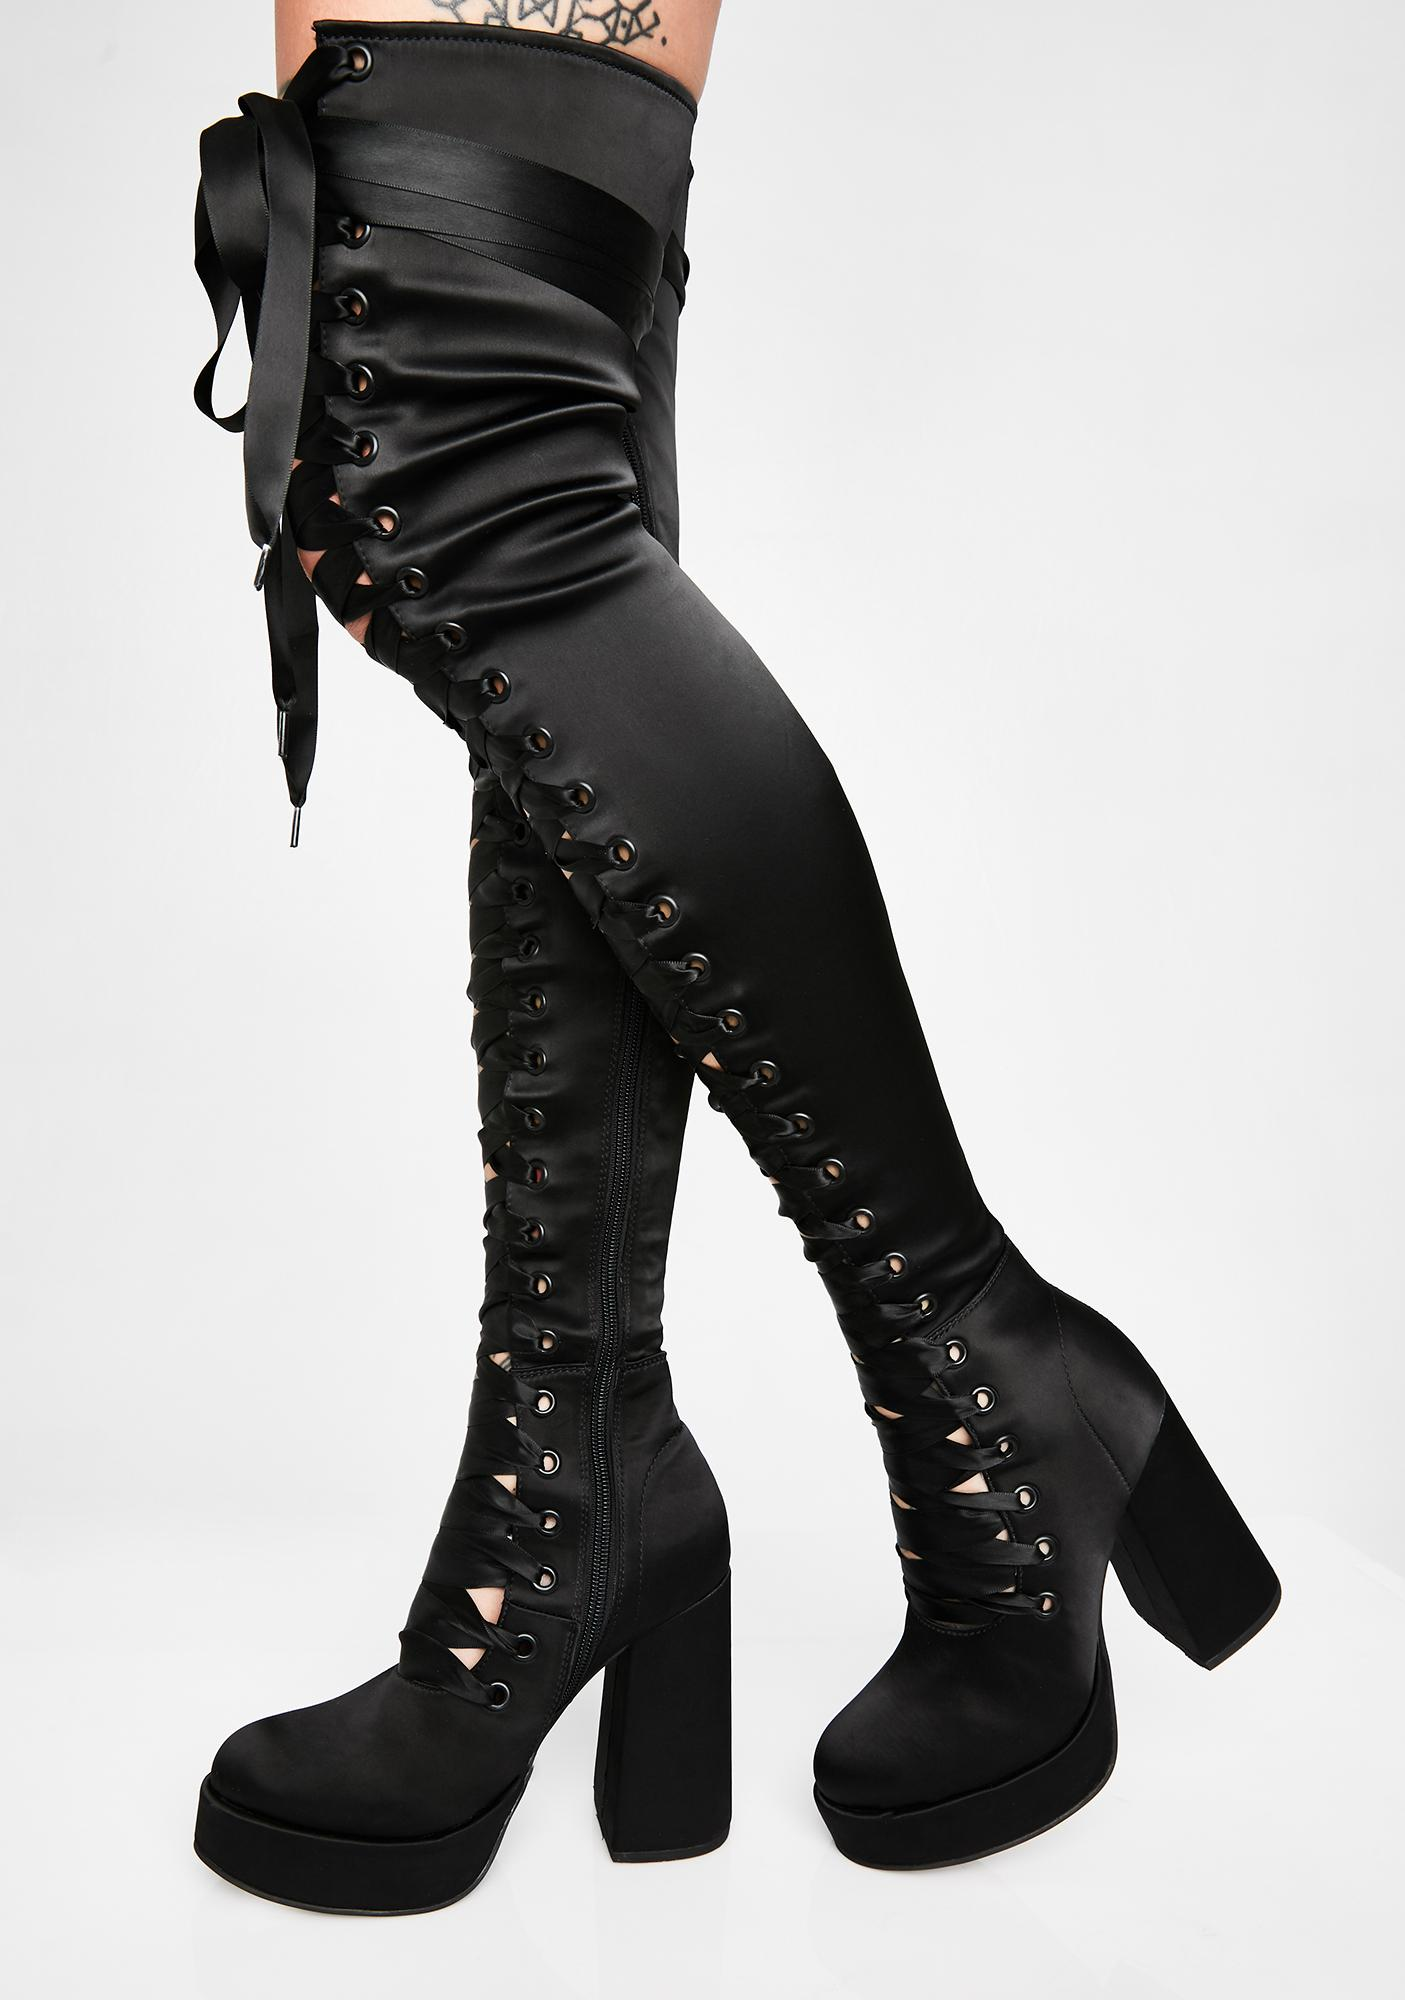 de0f71d4633 Luna Dollhouse Diva Thigh High Boots